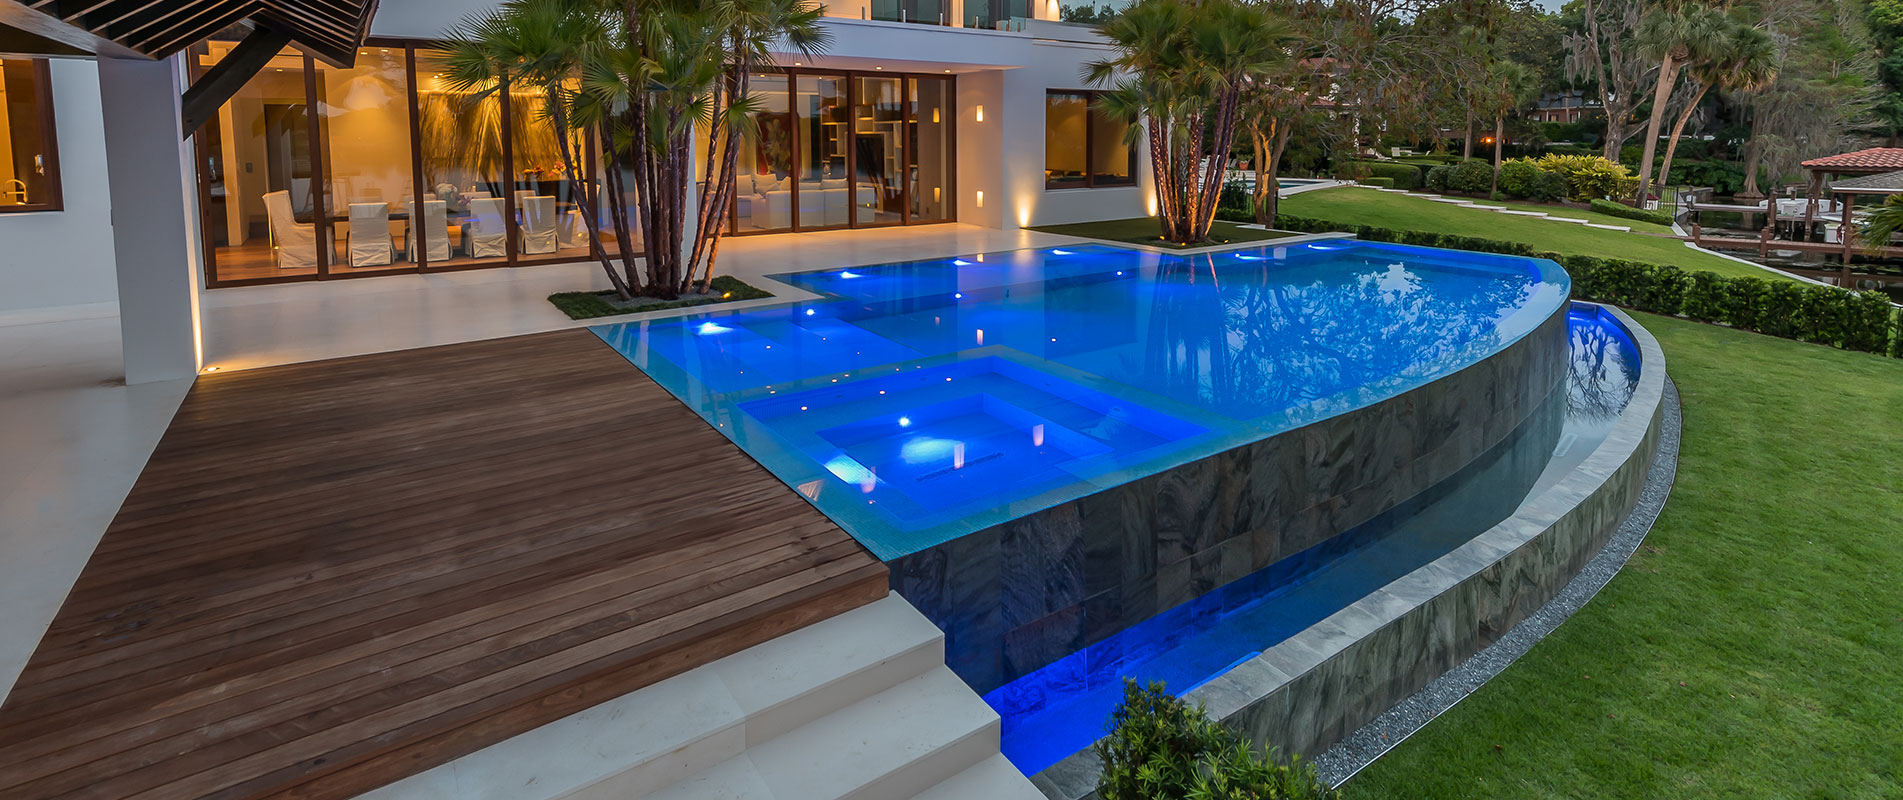 Custom-pool-with-infinity-edge-and-tile-interior-4